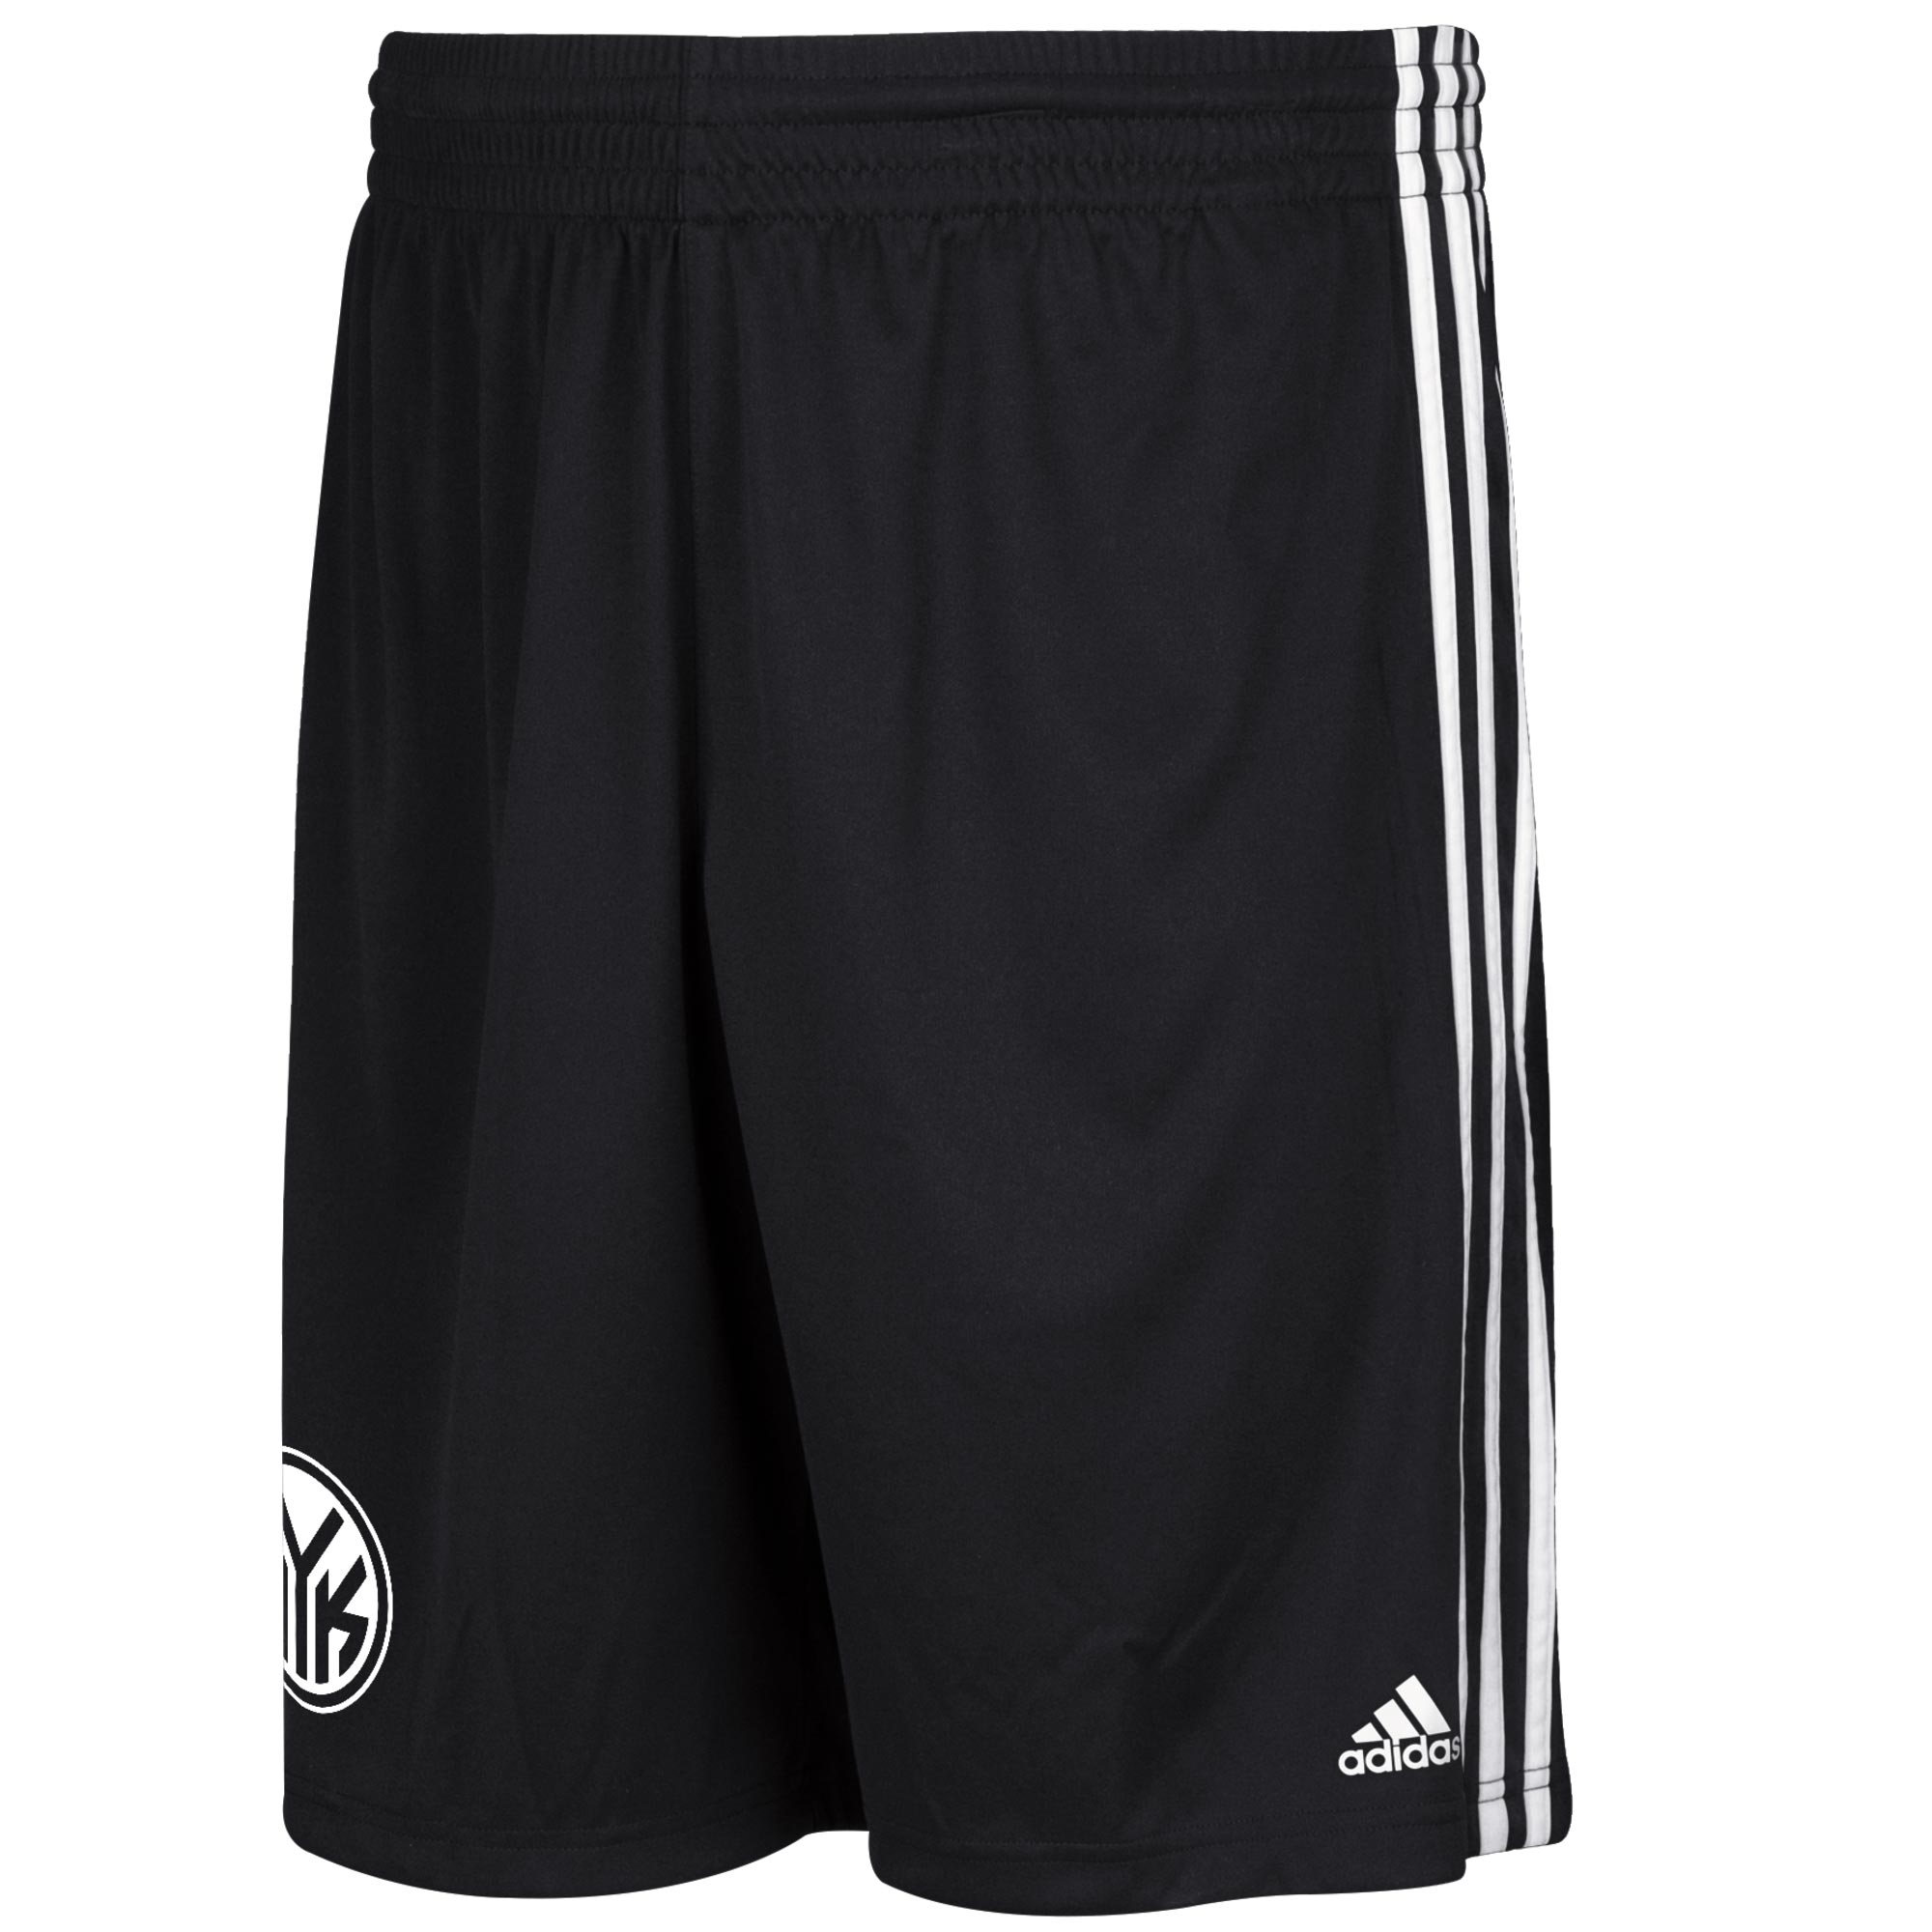 New York Knicks adidas Logo Short - Mens